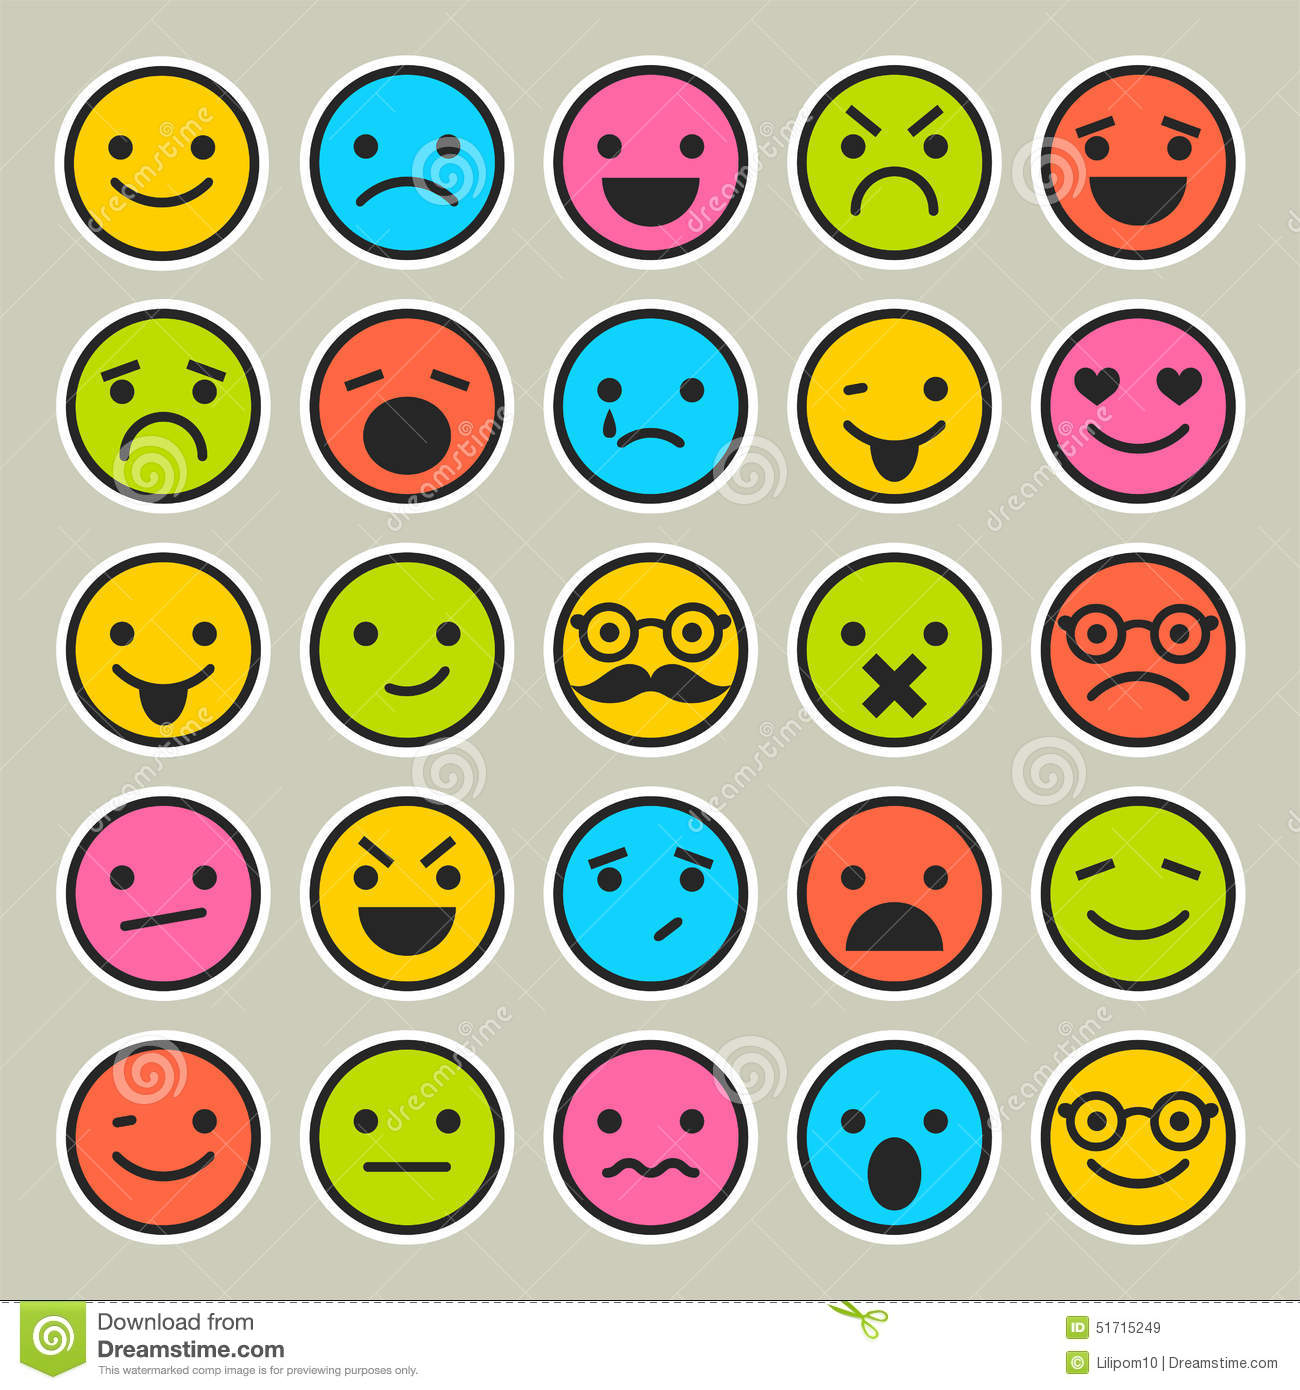 Set of emoticons faces icons for design stock vector set of emoticons faces icons for design buycottarizona Images